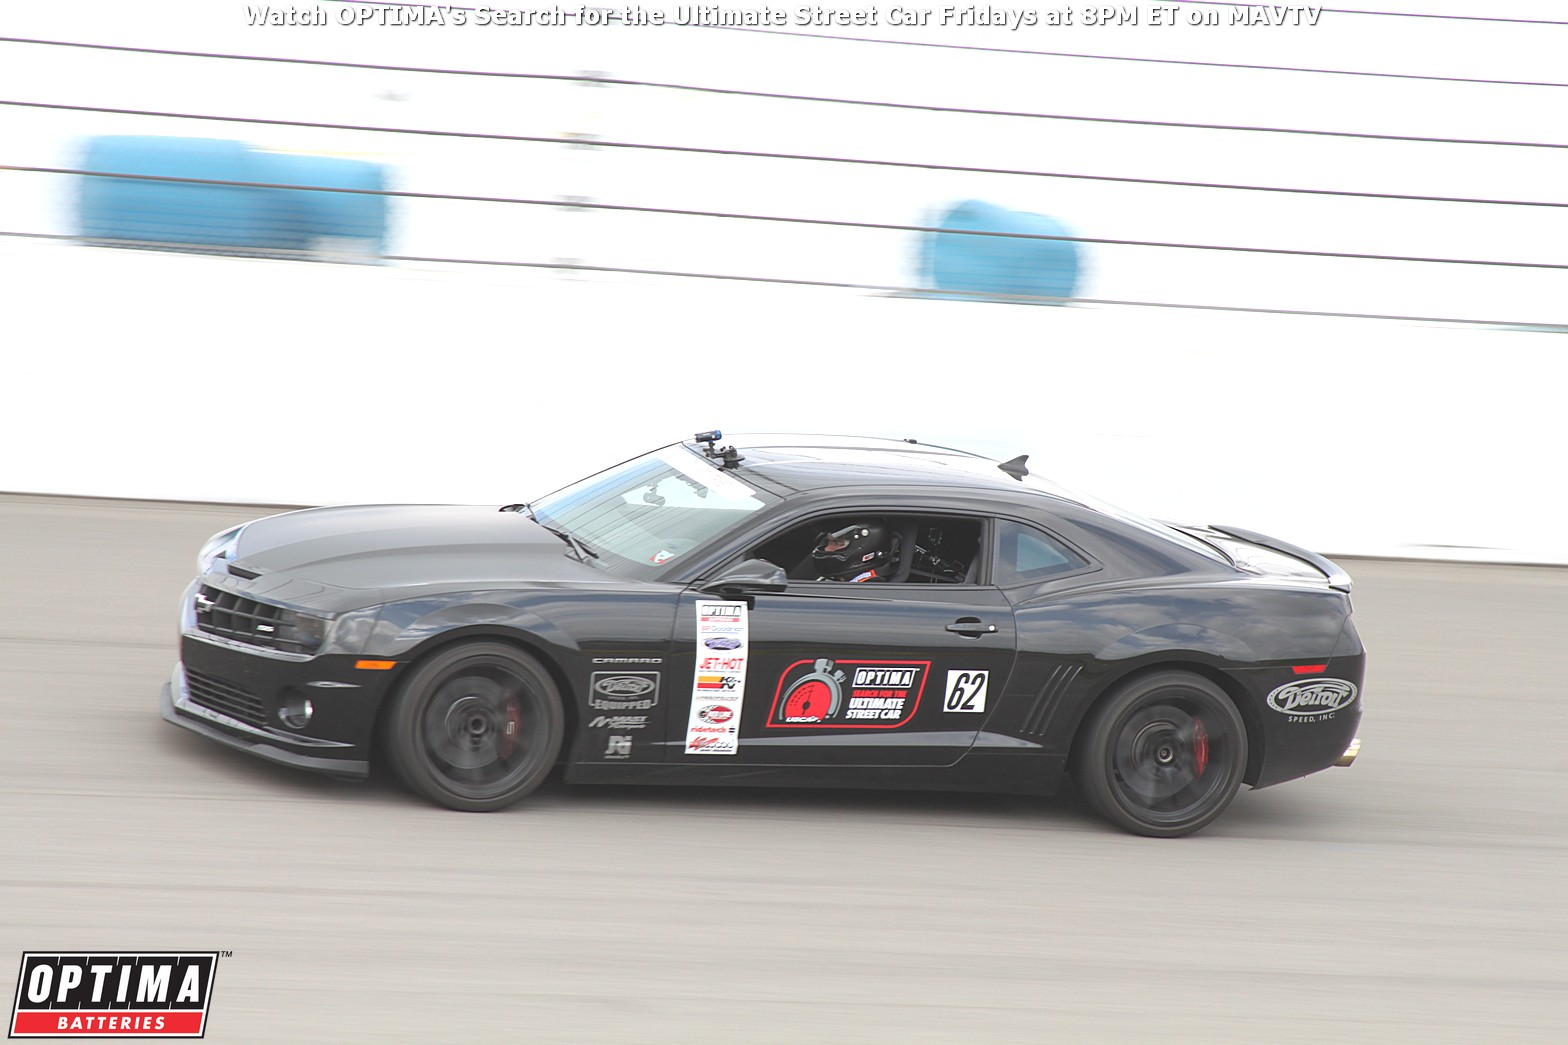 Bryan-Johnson-2013-Chevrolet-Camaro-USCA-Michigan-2014_133.jpg